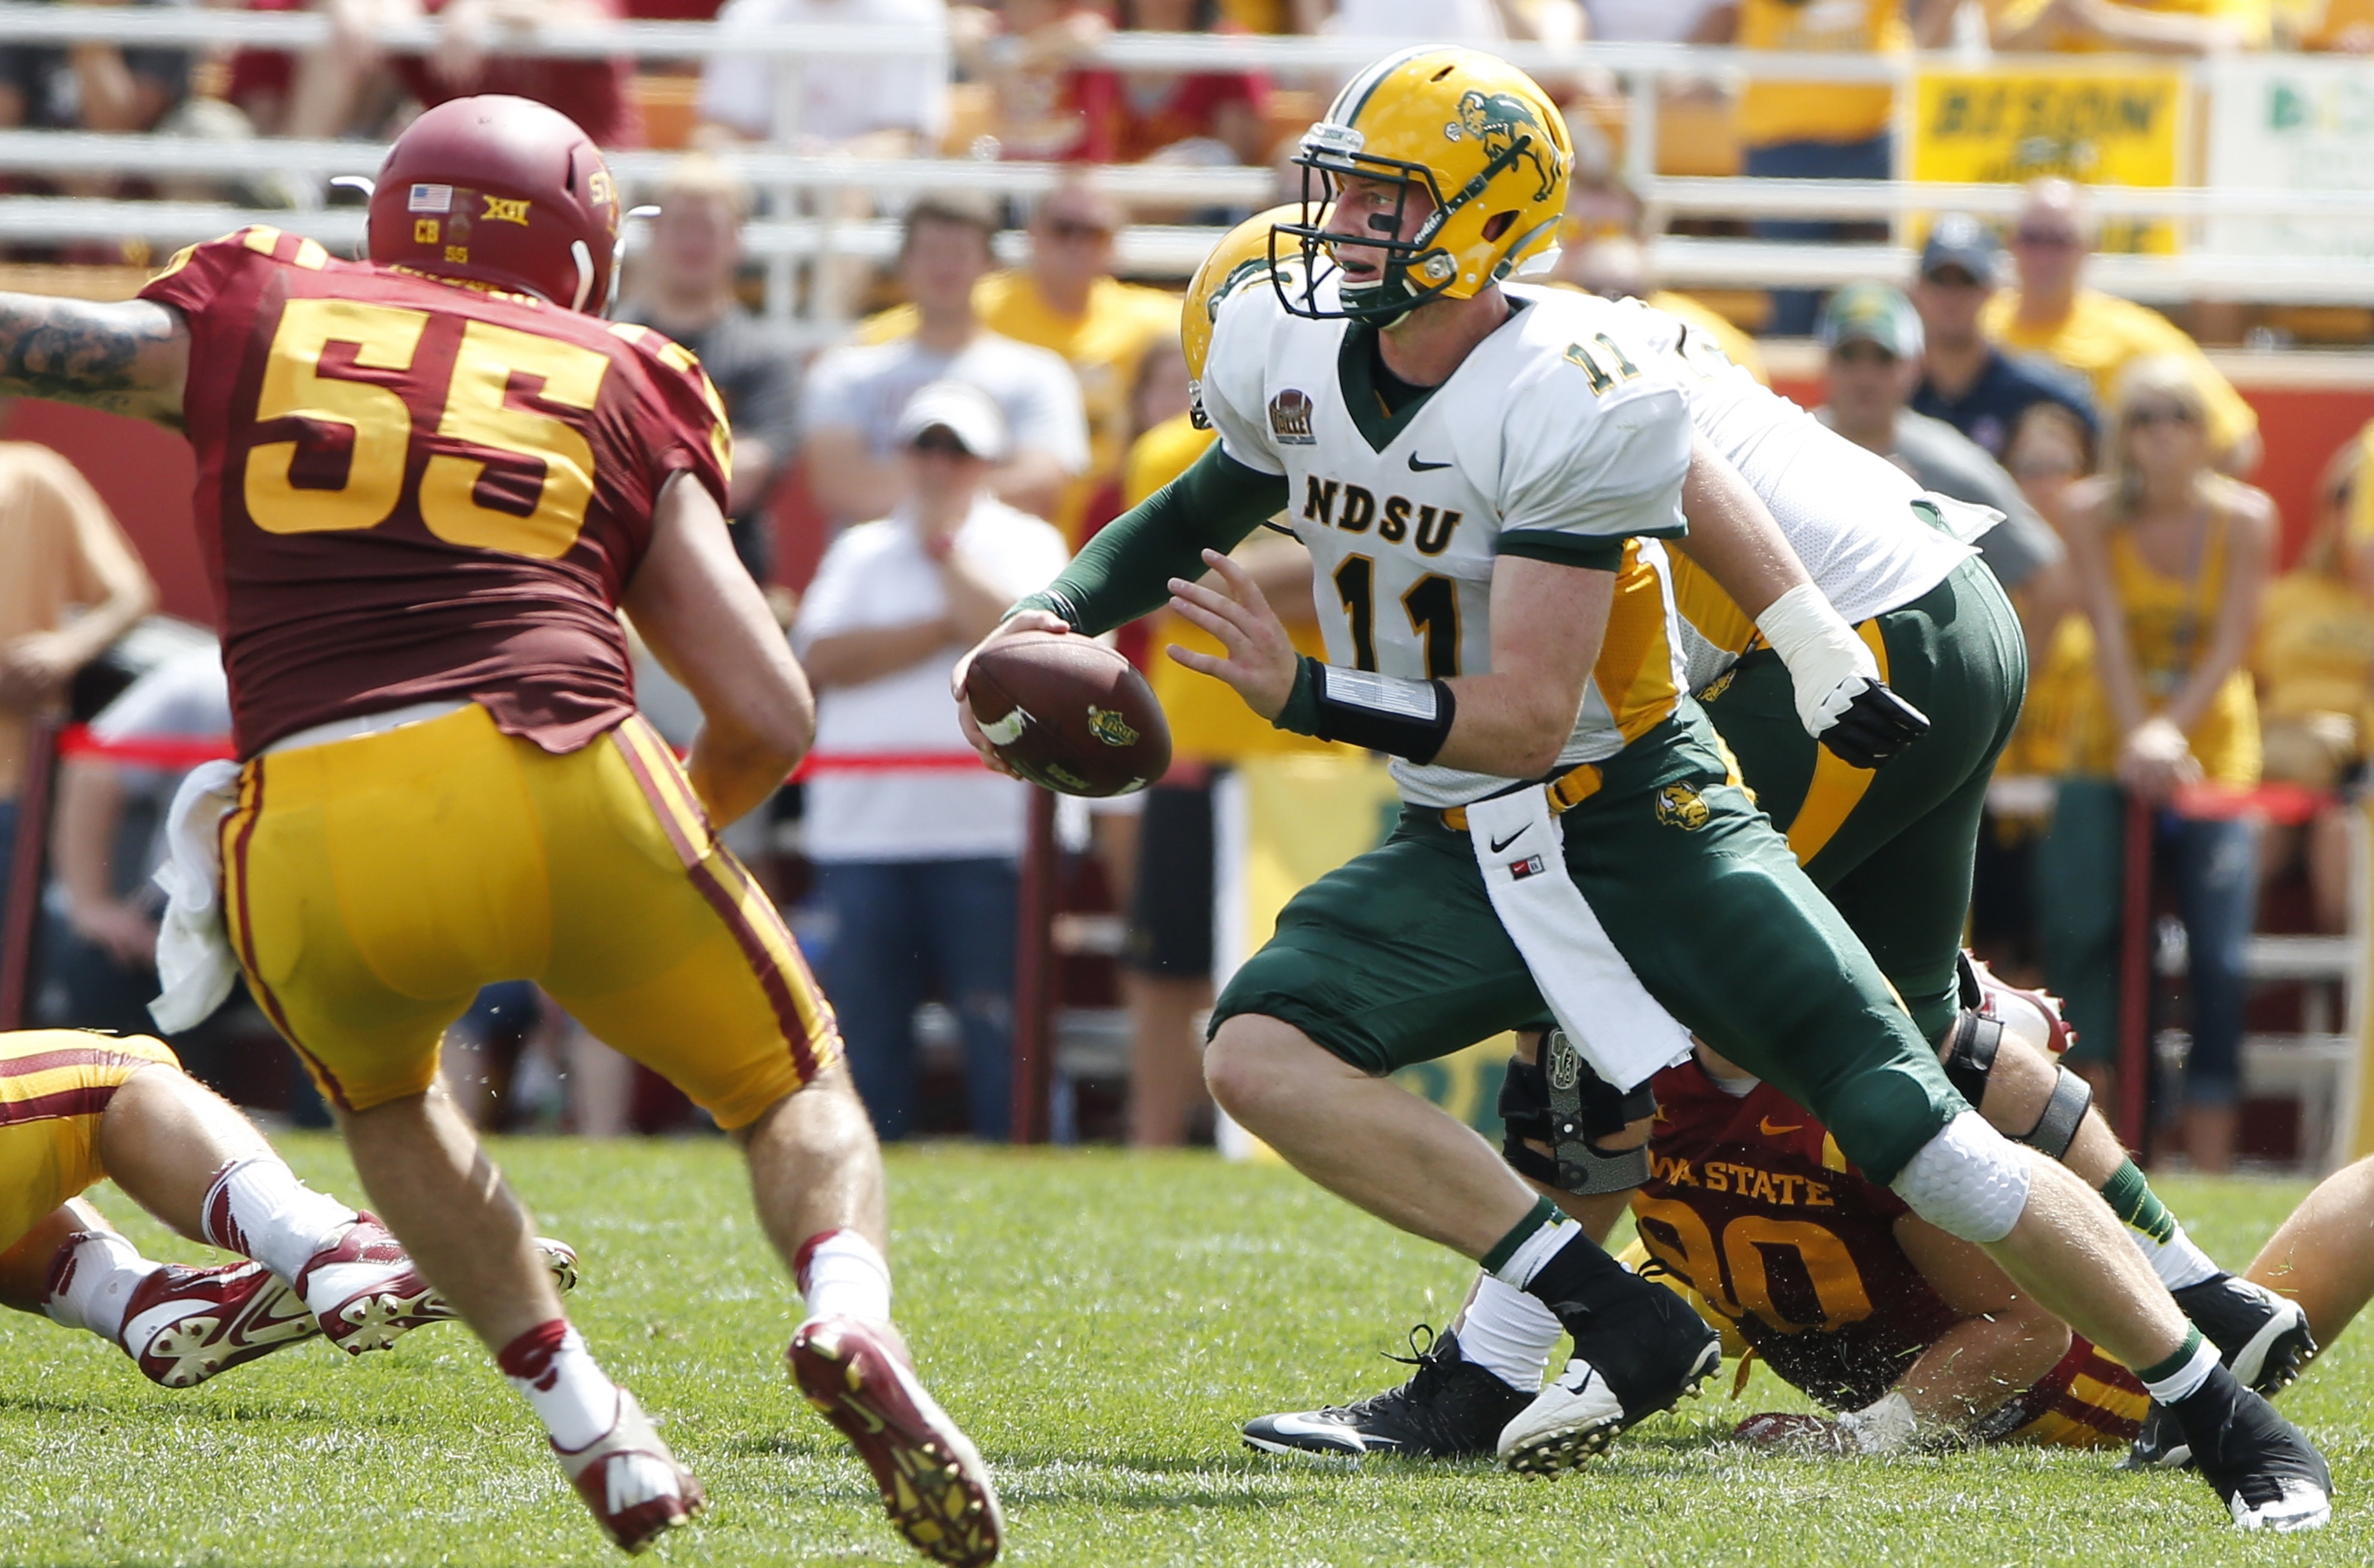 AMES, IA - AUGUST 30: quarterback Carson Wentz #11 of the North Dakota State Bison scrambles under pressure from linebacker Jevohn Miller #55 of the Iowa State Cyclones in the second half of play at Jack Trice Stadium on August 30, 2014 in Ames, Iowa. North Dakota State defeated Iowa State 34-14. (Photo by David Purdy/Getty Images)